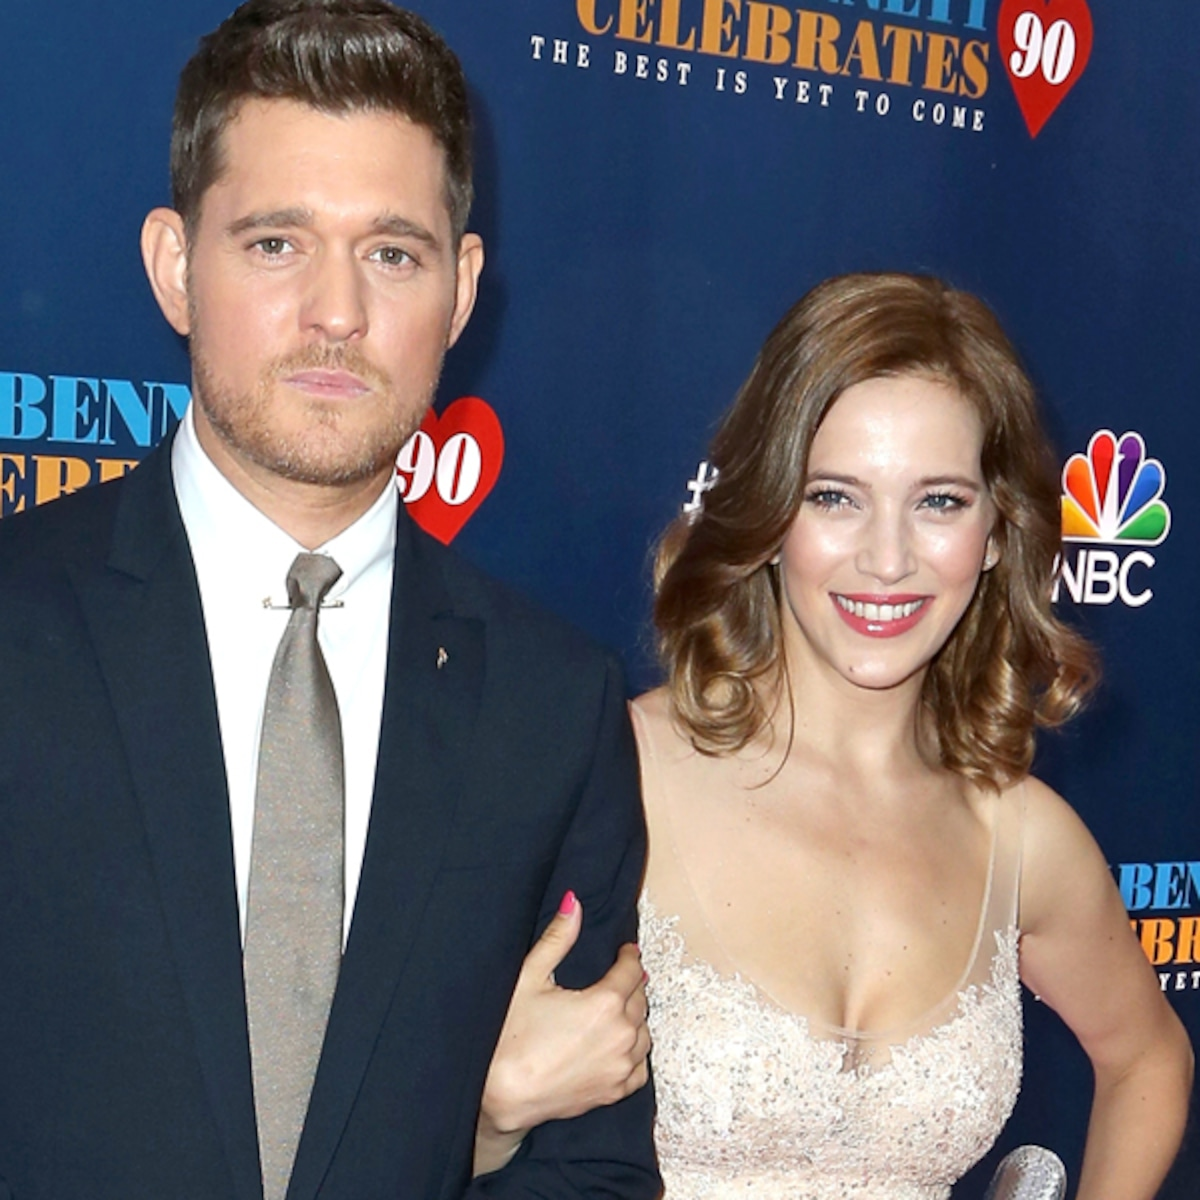 who is michael buble dating now